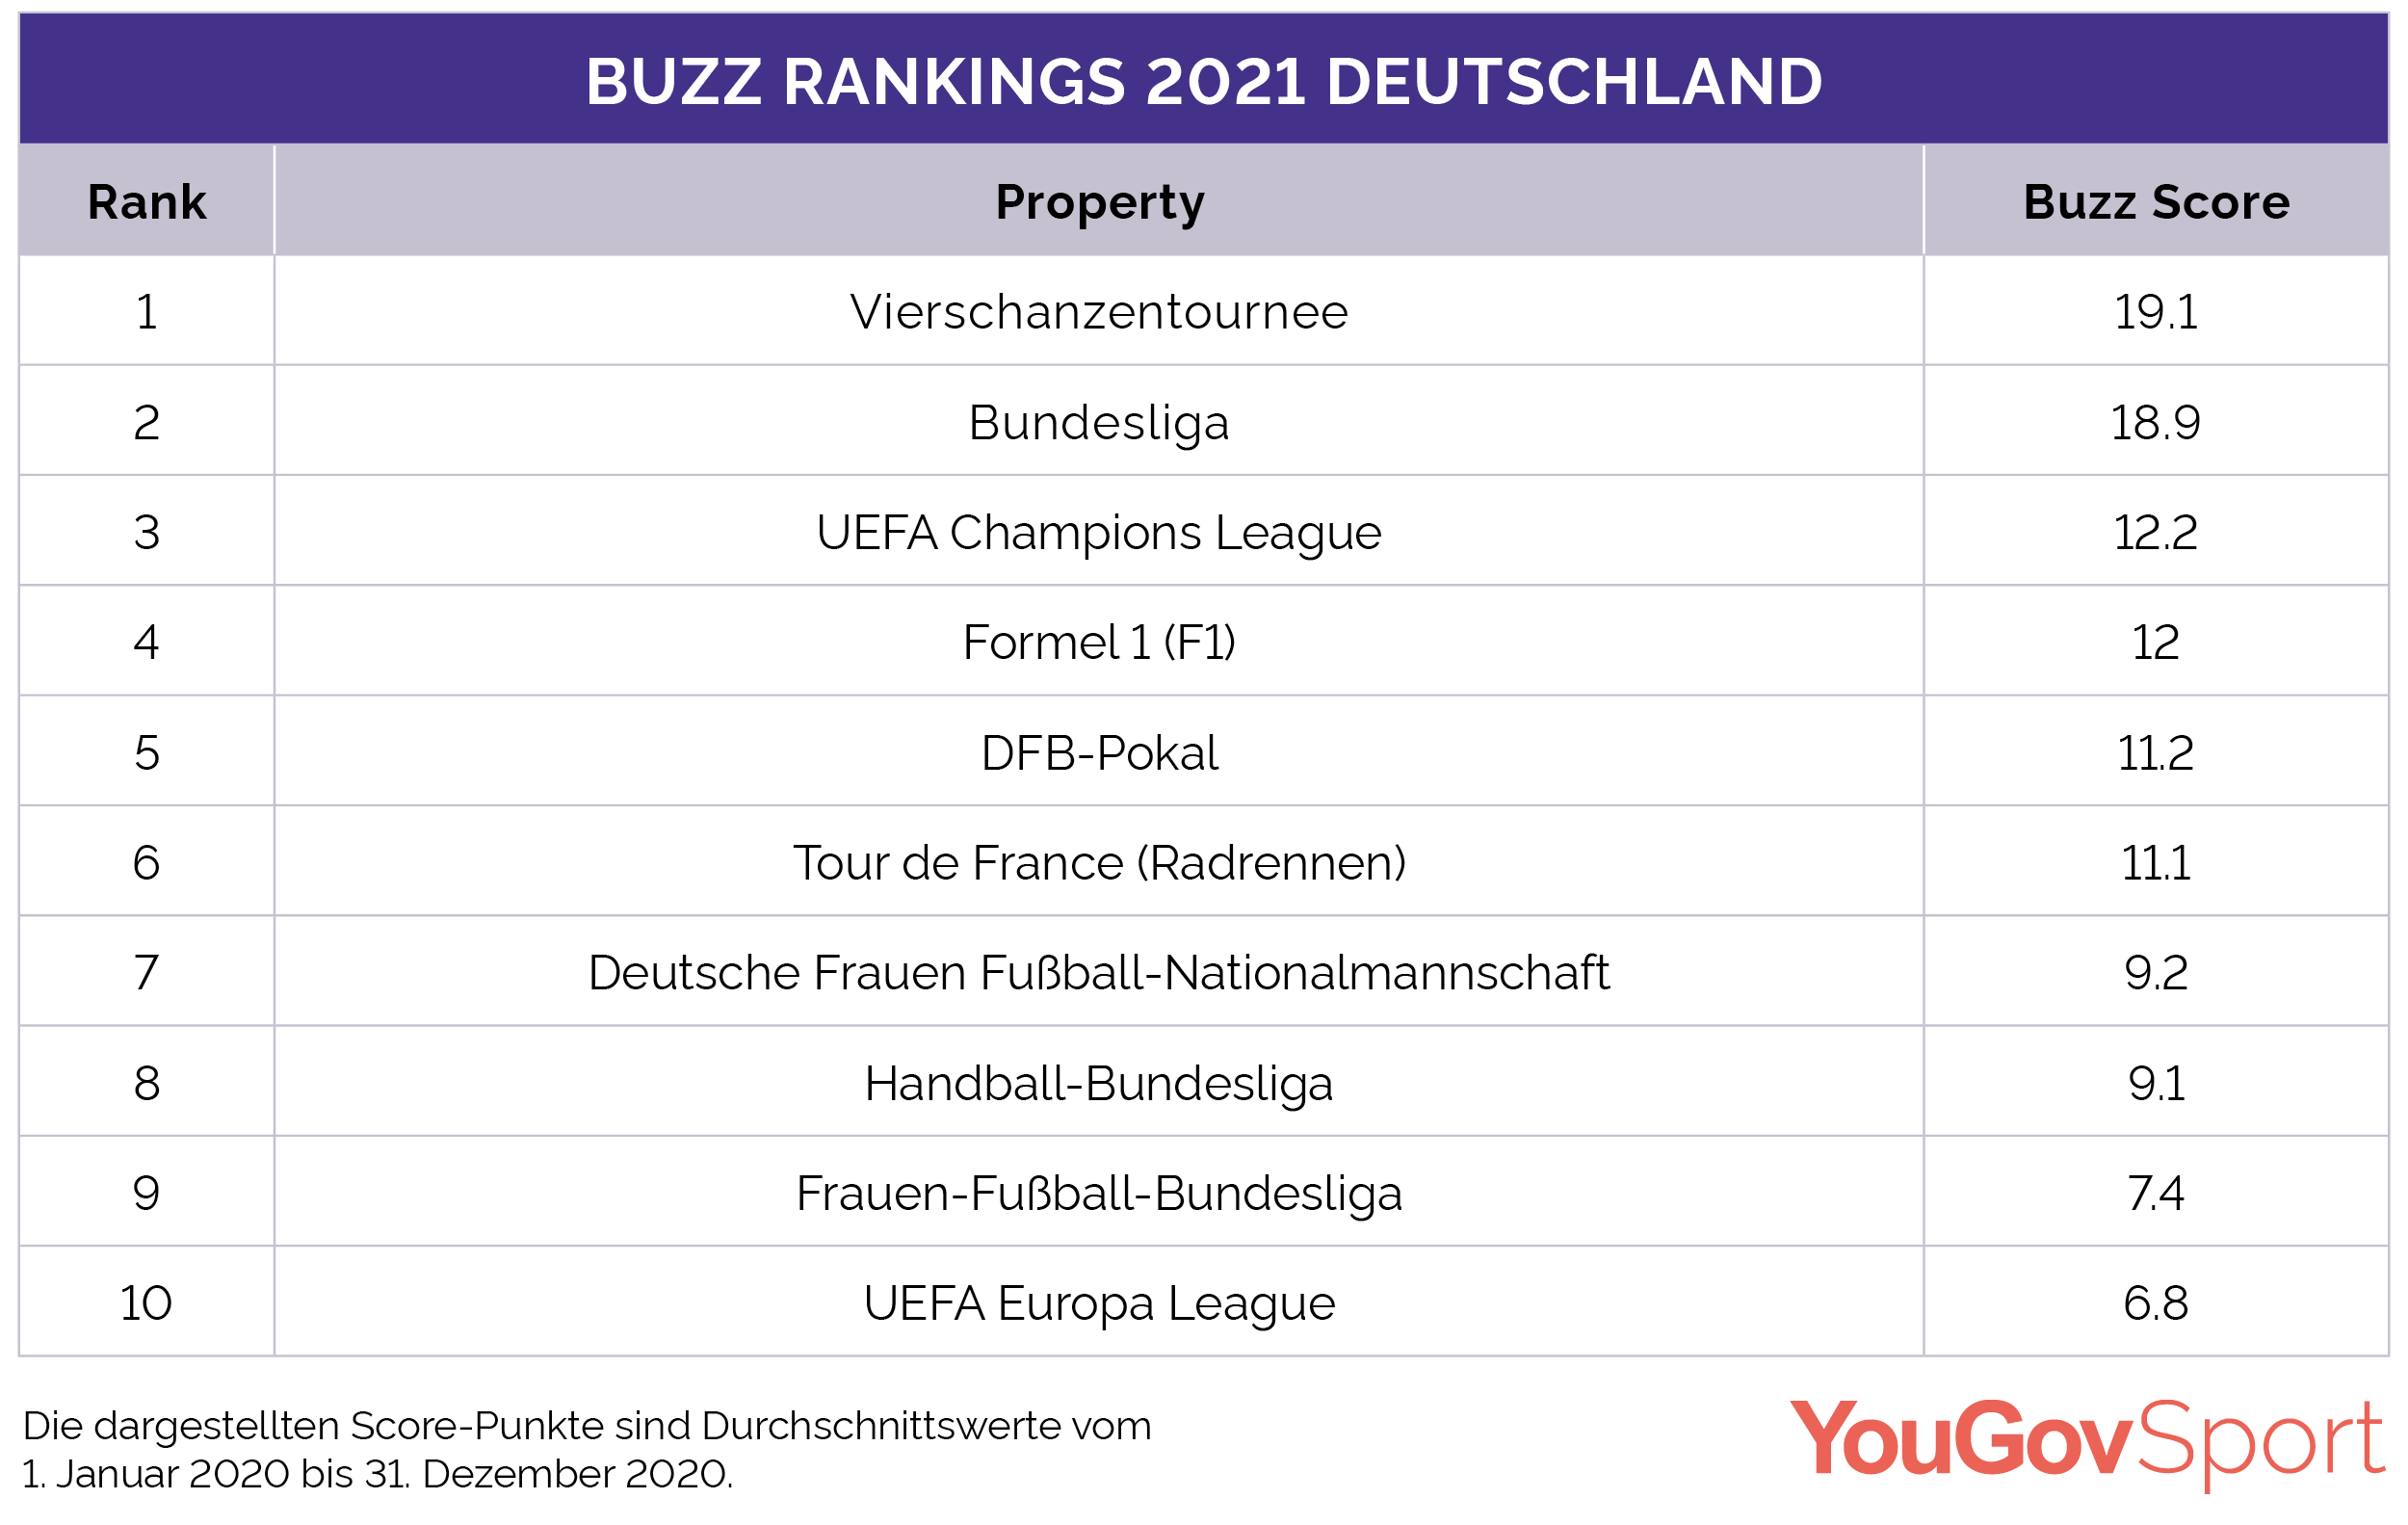 YouGov Sport Germany Buzz Ranking 2021